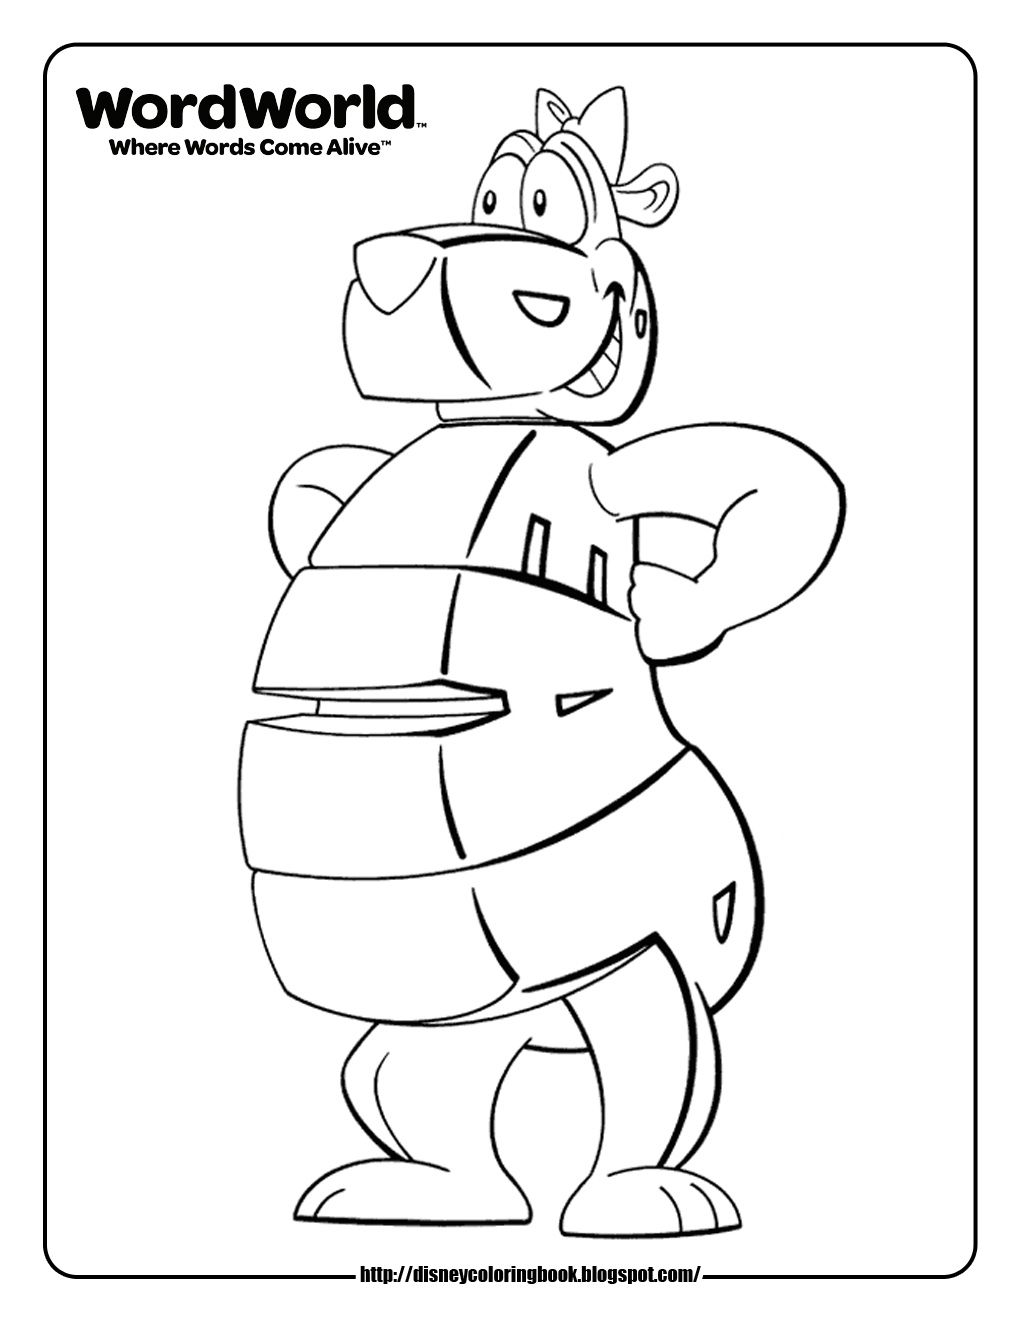 Word world | word world bear coloring pages | Party ideas ...